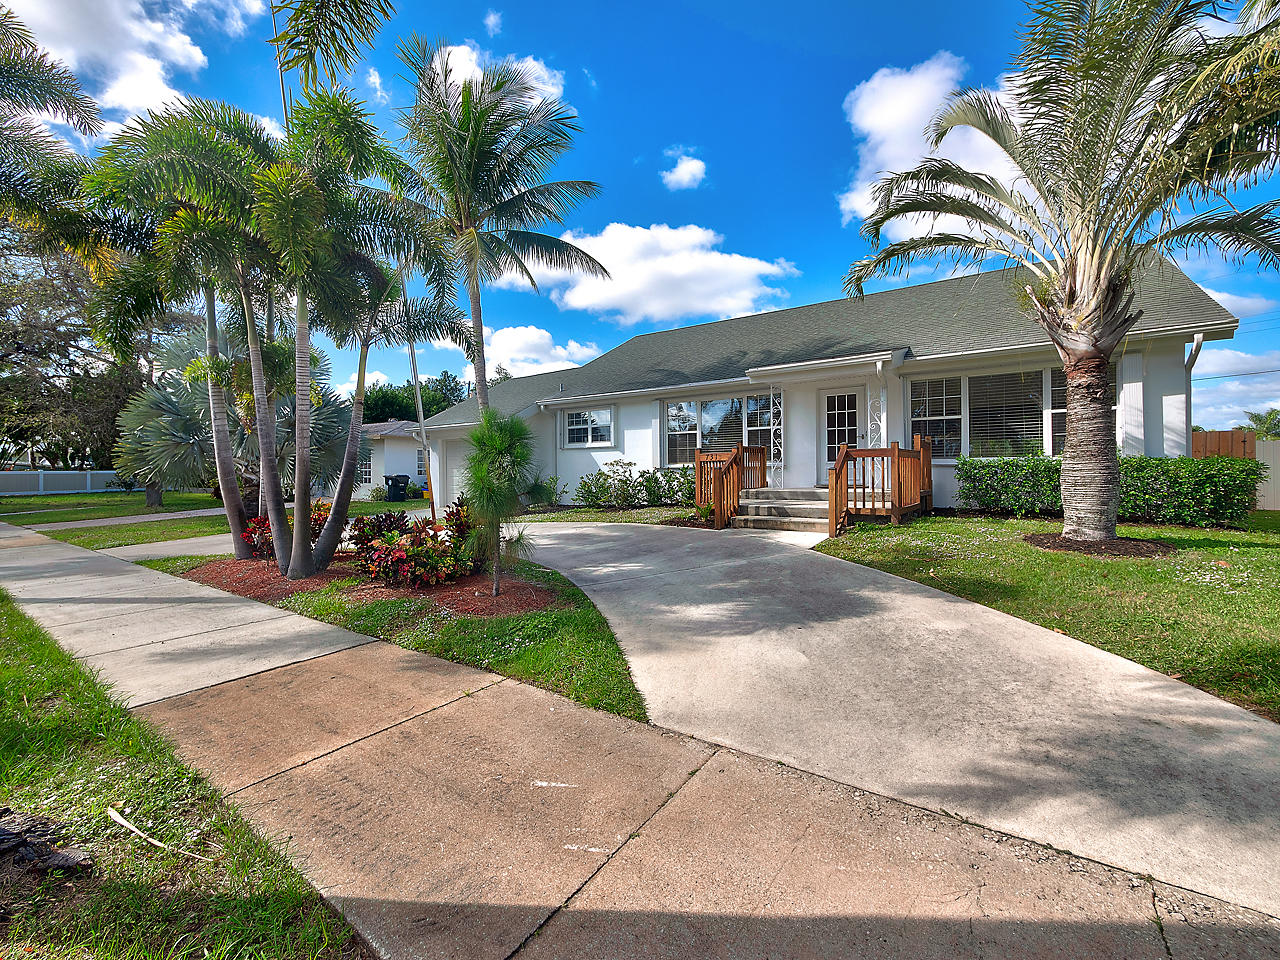 This home features an open light and bright floor plan with vaulted ceilings. It's been freshly painted for your move in and comes with a Brand New Kitchen. This is a great 4 bedroom family home that's located in central Palm Beach County with easy access to I-95. A large fenced in backyard is ready for pets and kids to roam.